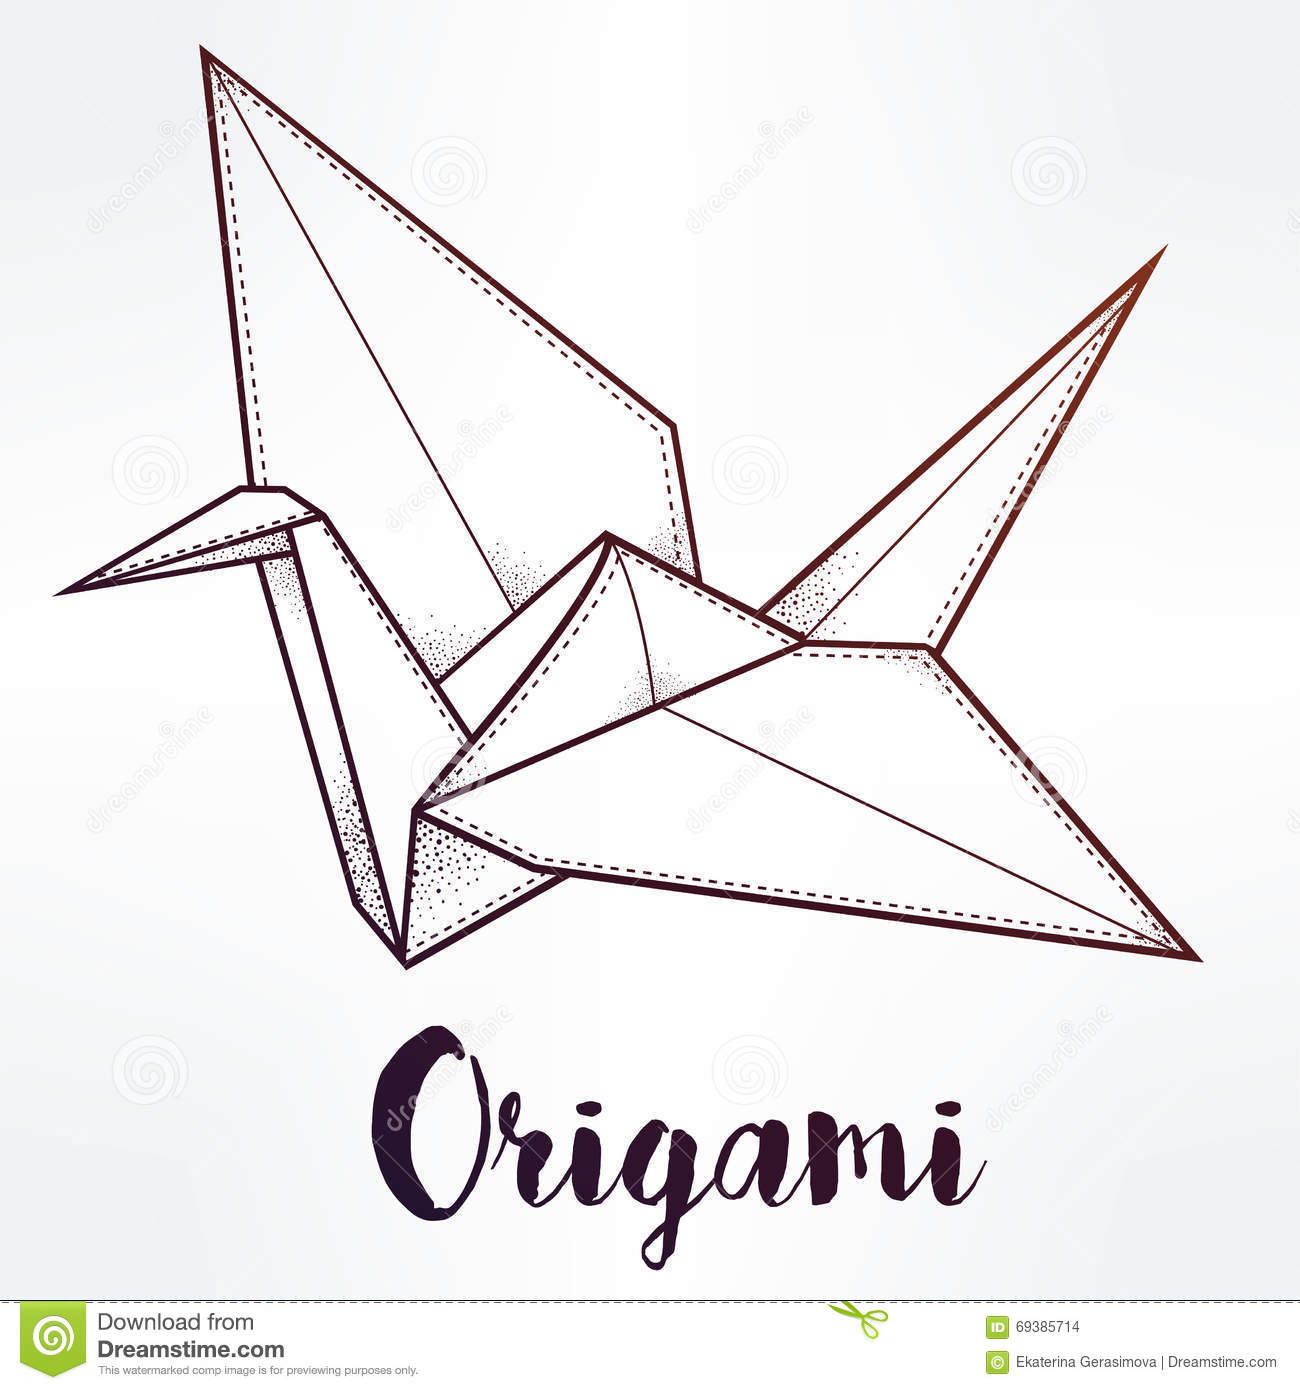 Vector Stylized Paper Crane. Stock Vector - Image: 69385714 - photo#10